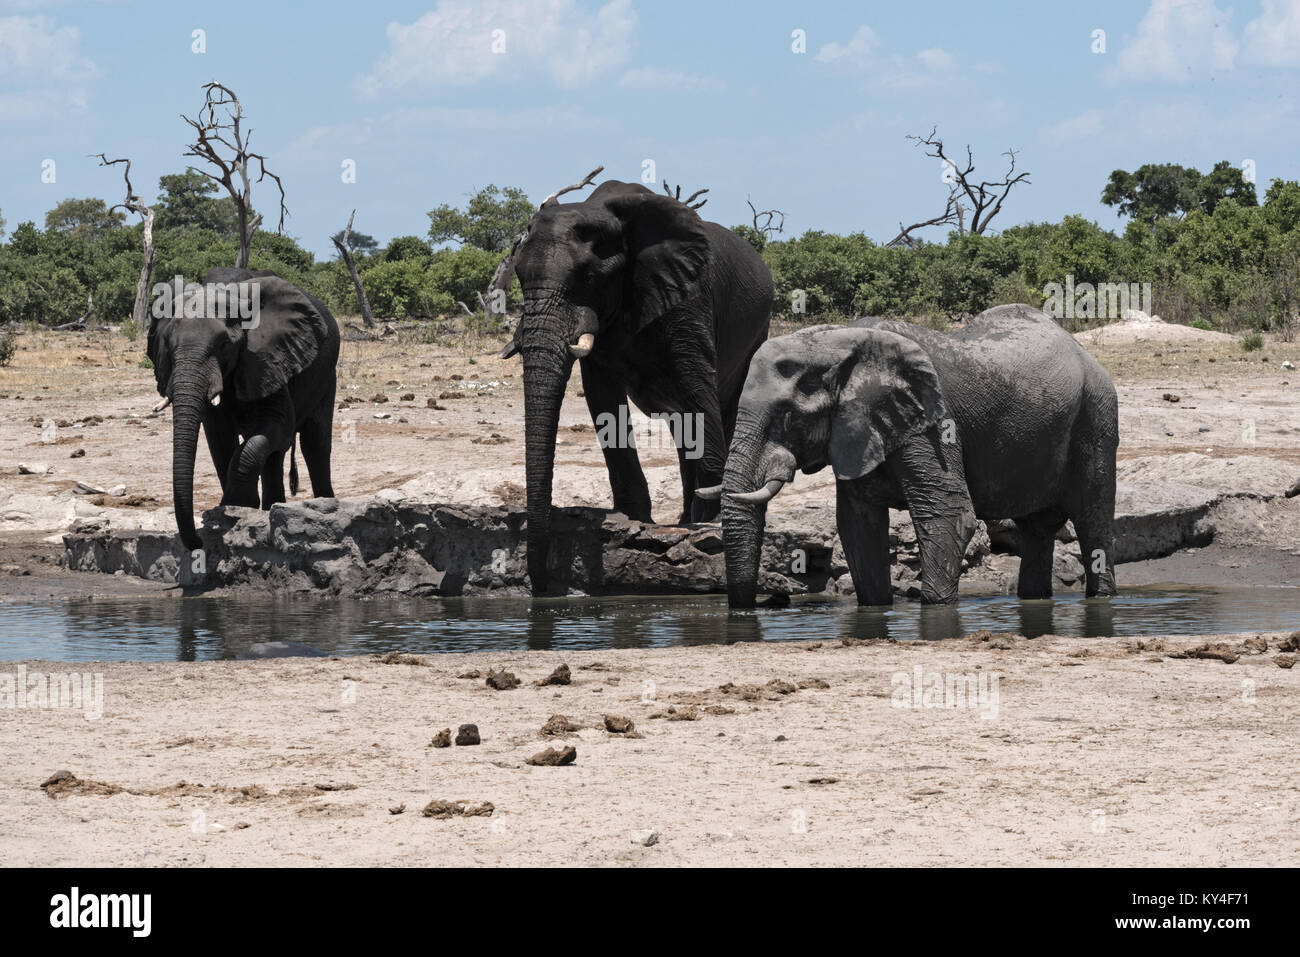 Elephant group at a waterhole in Chope National Park in Botswana - Stock Image